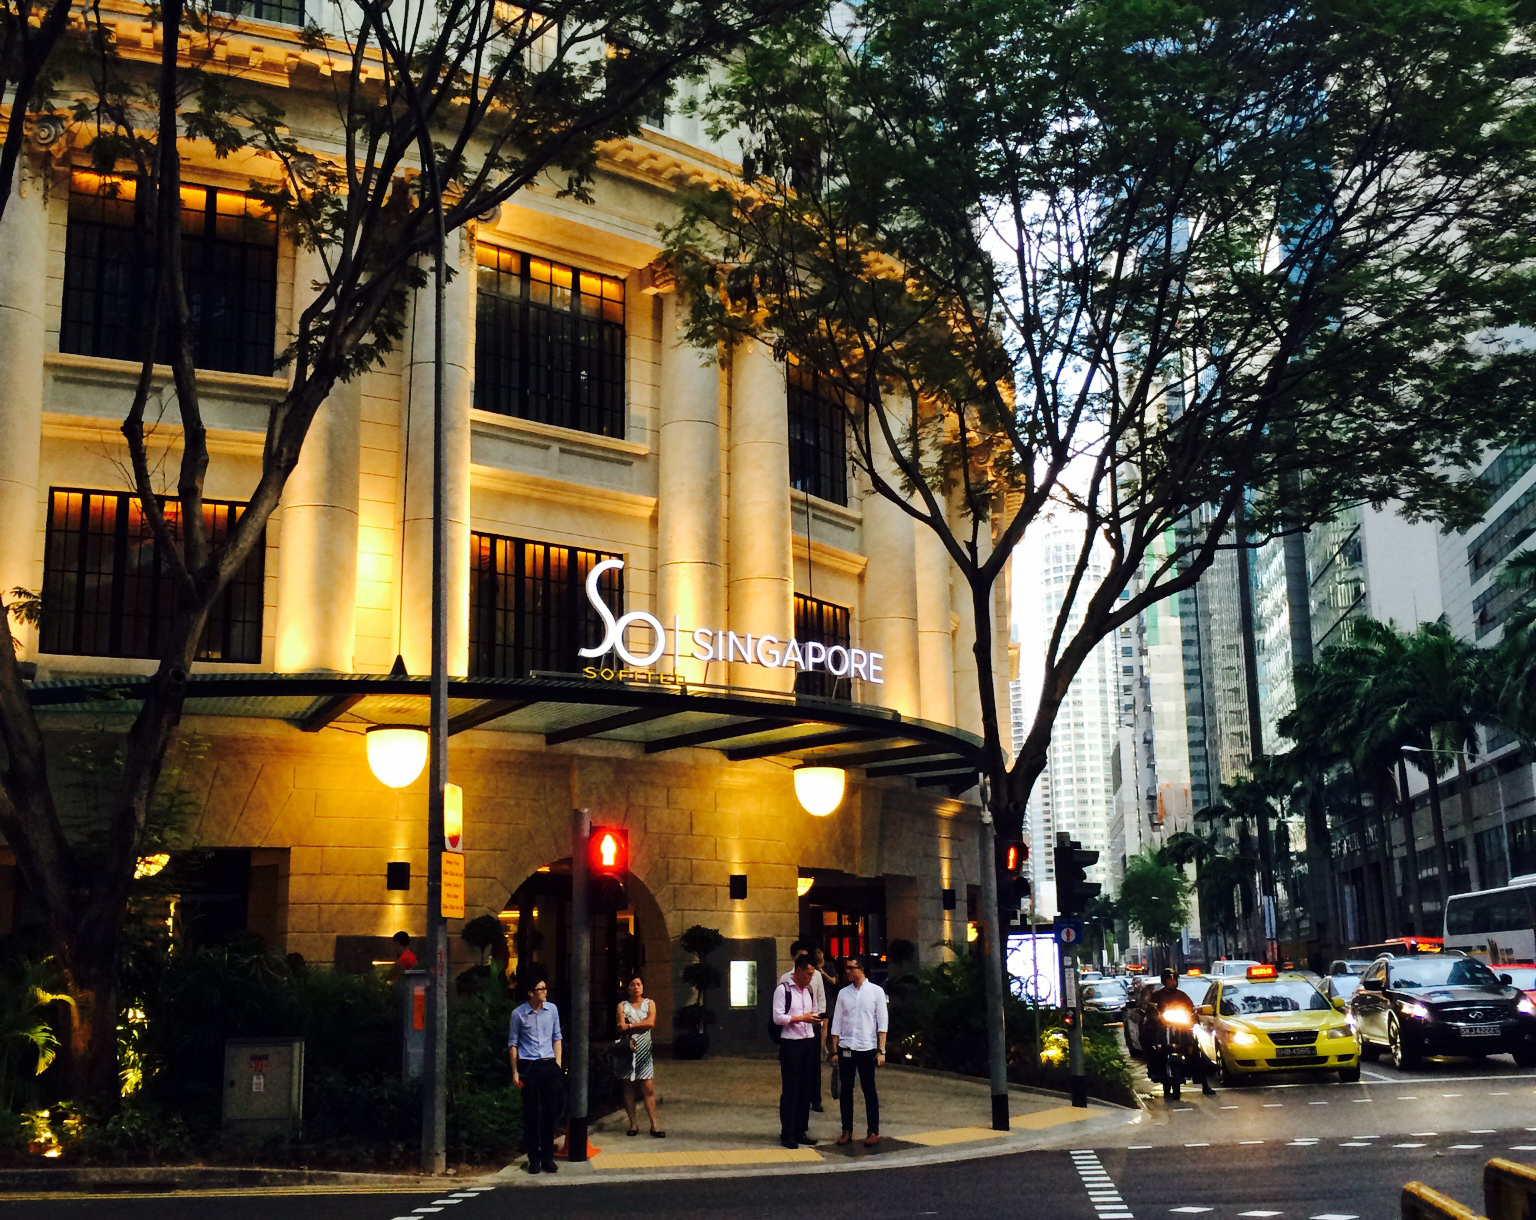 Sofitel So Singapore Xperience Bar